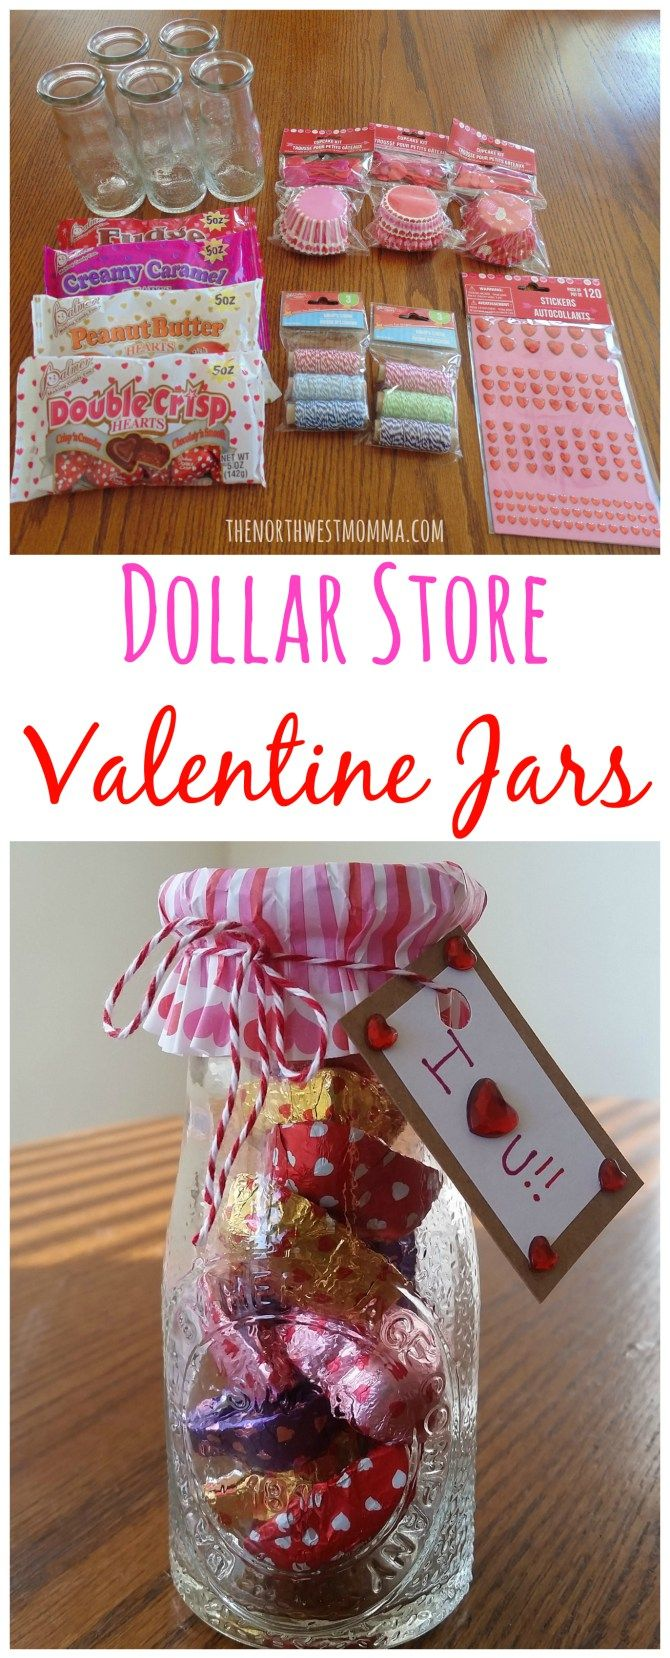 The 25 best valentine ideas ideas on pinterest valentines day dollar store valentine jars negle Choice Image